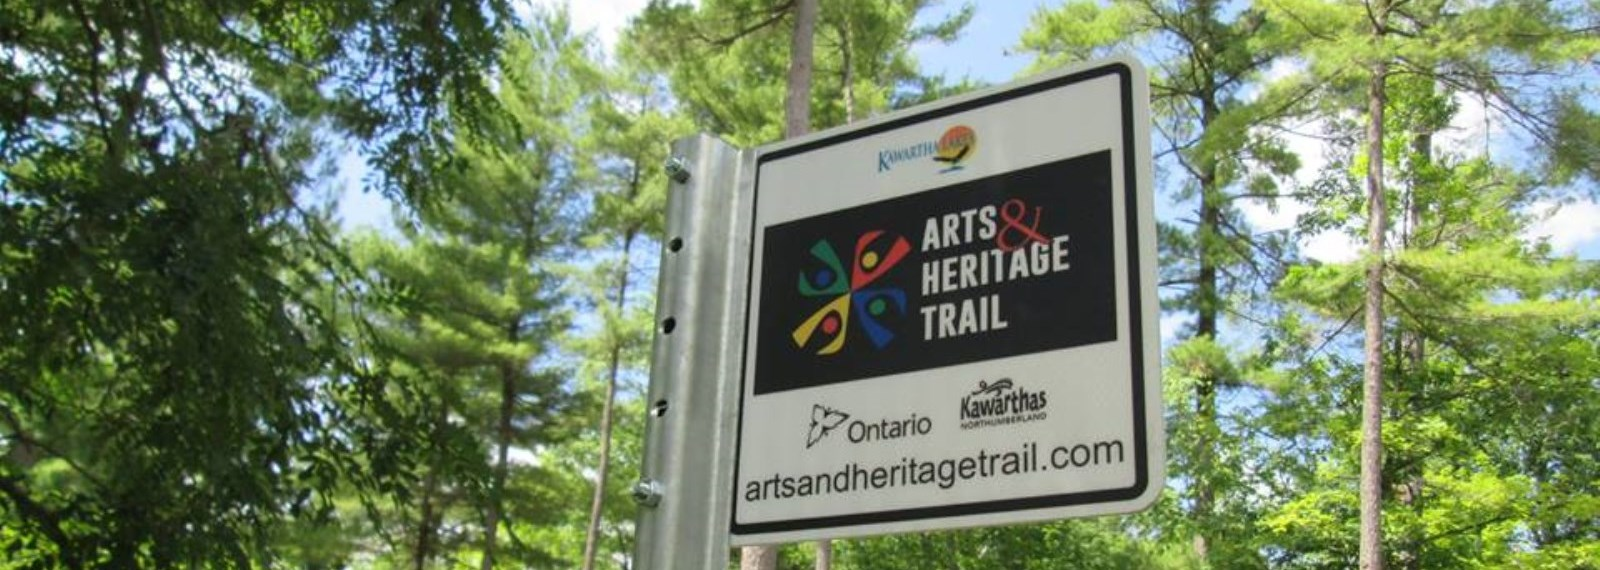 Kawartha Lakes Arts and Heritage Trail sign